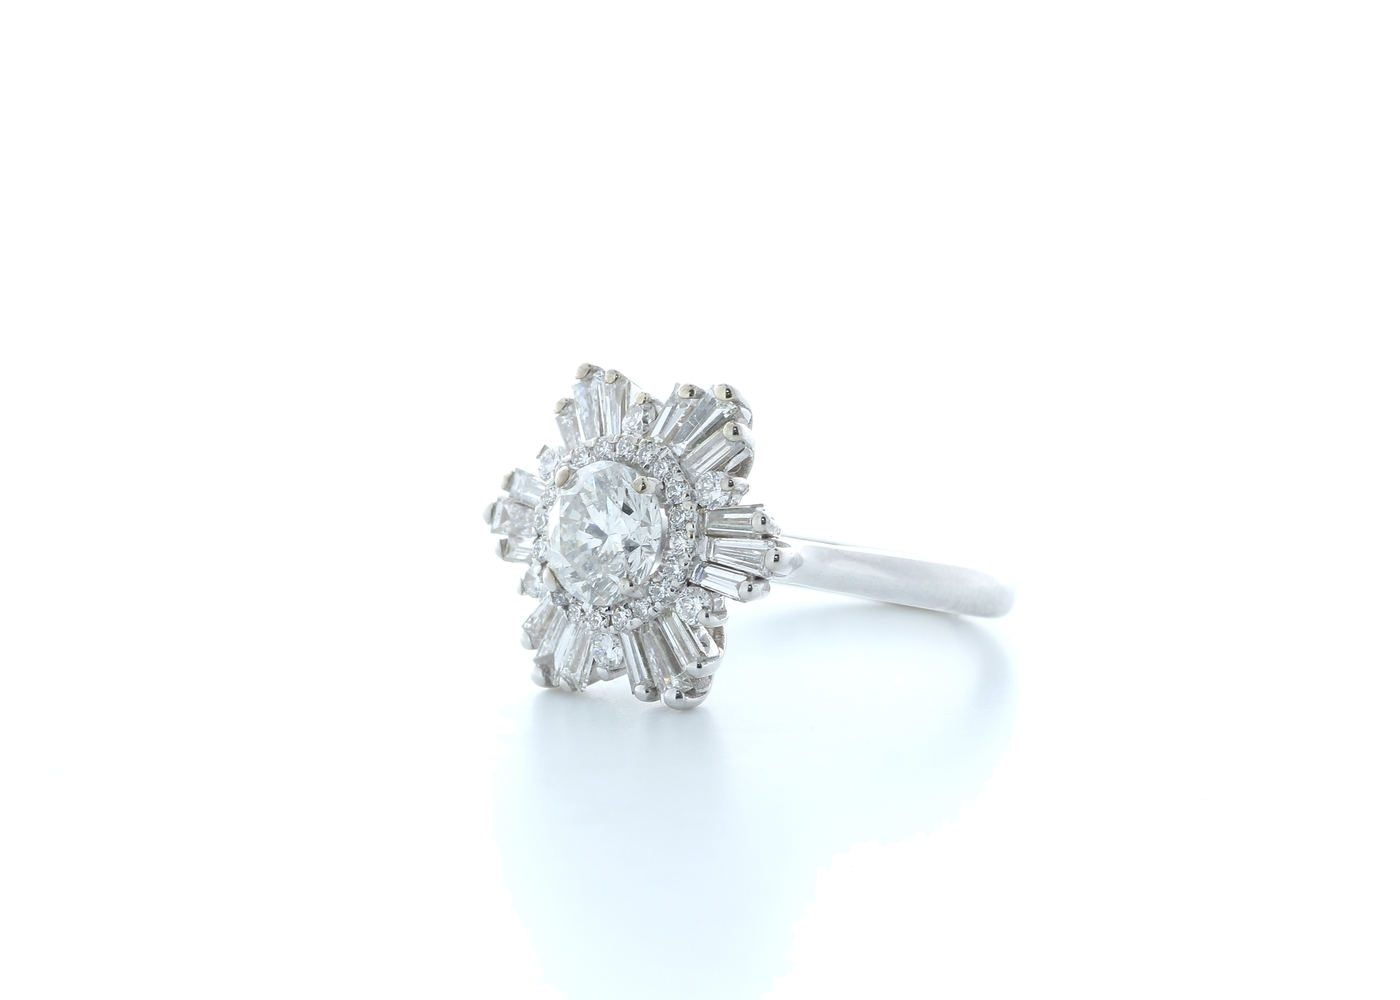 18ct White Gold Round Cluster Claw Set Diamond Ring 1.58 (0.77) Carats - Image 2 of 5